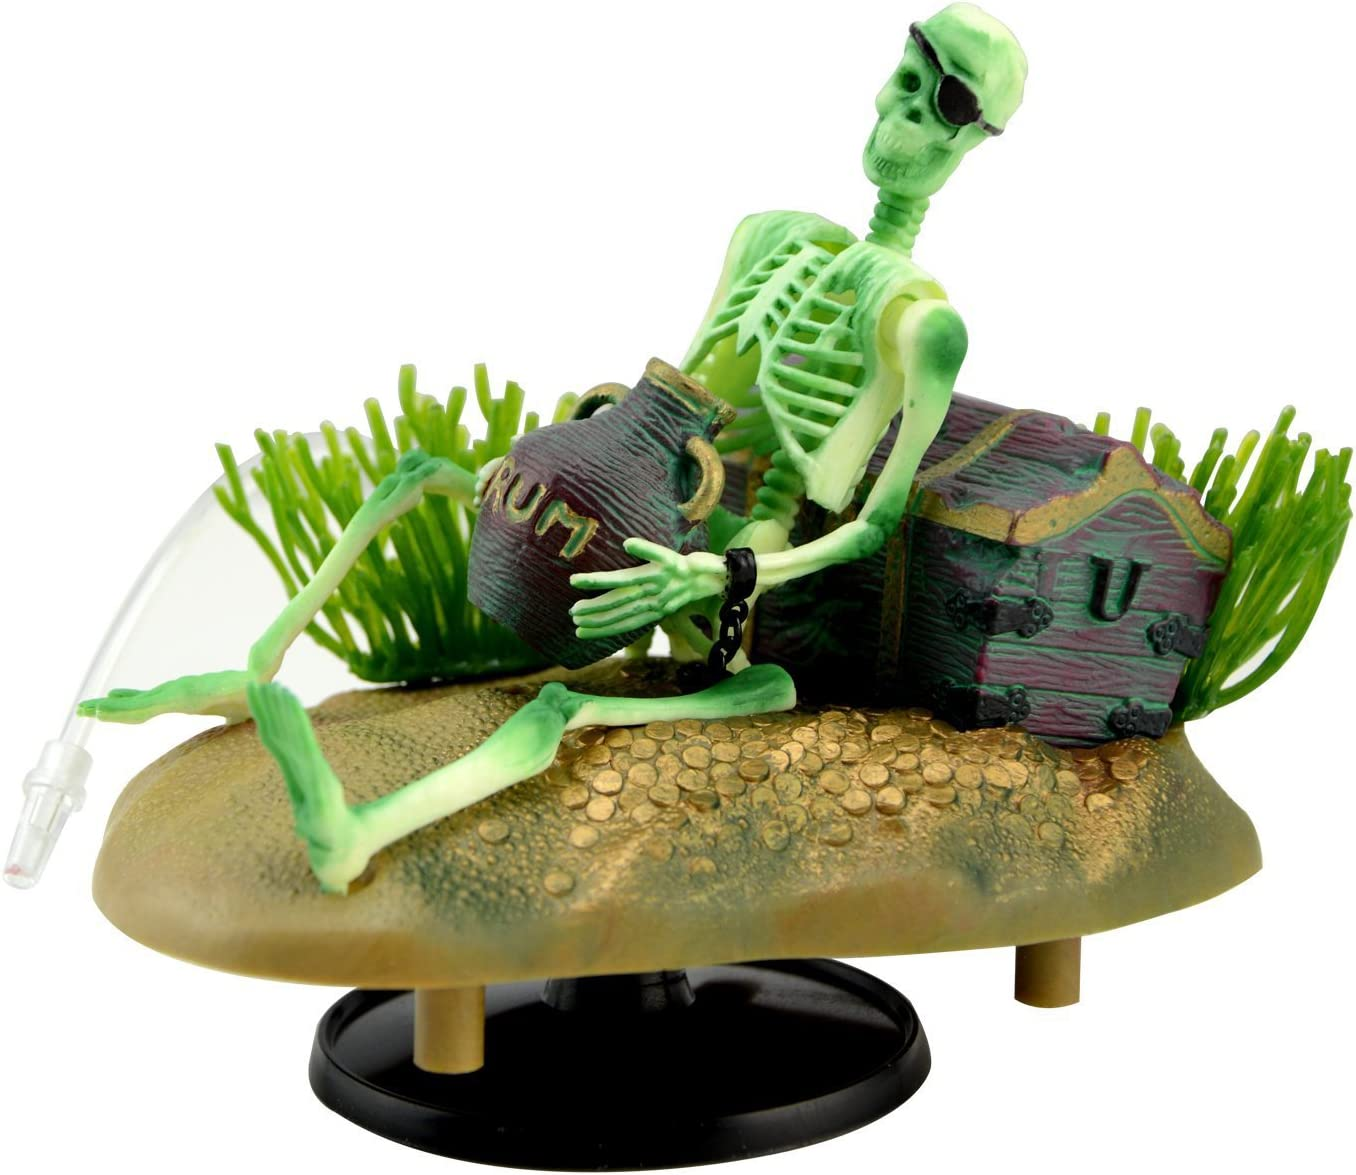 Saim Drunken Pirate Skeletons Live Action Aquarium Ornaments w/Bonus